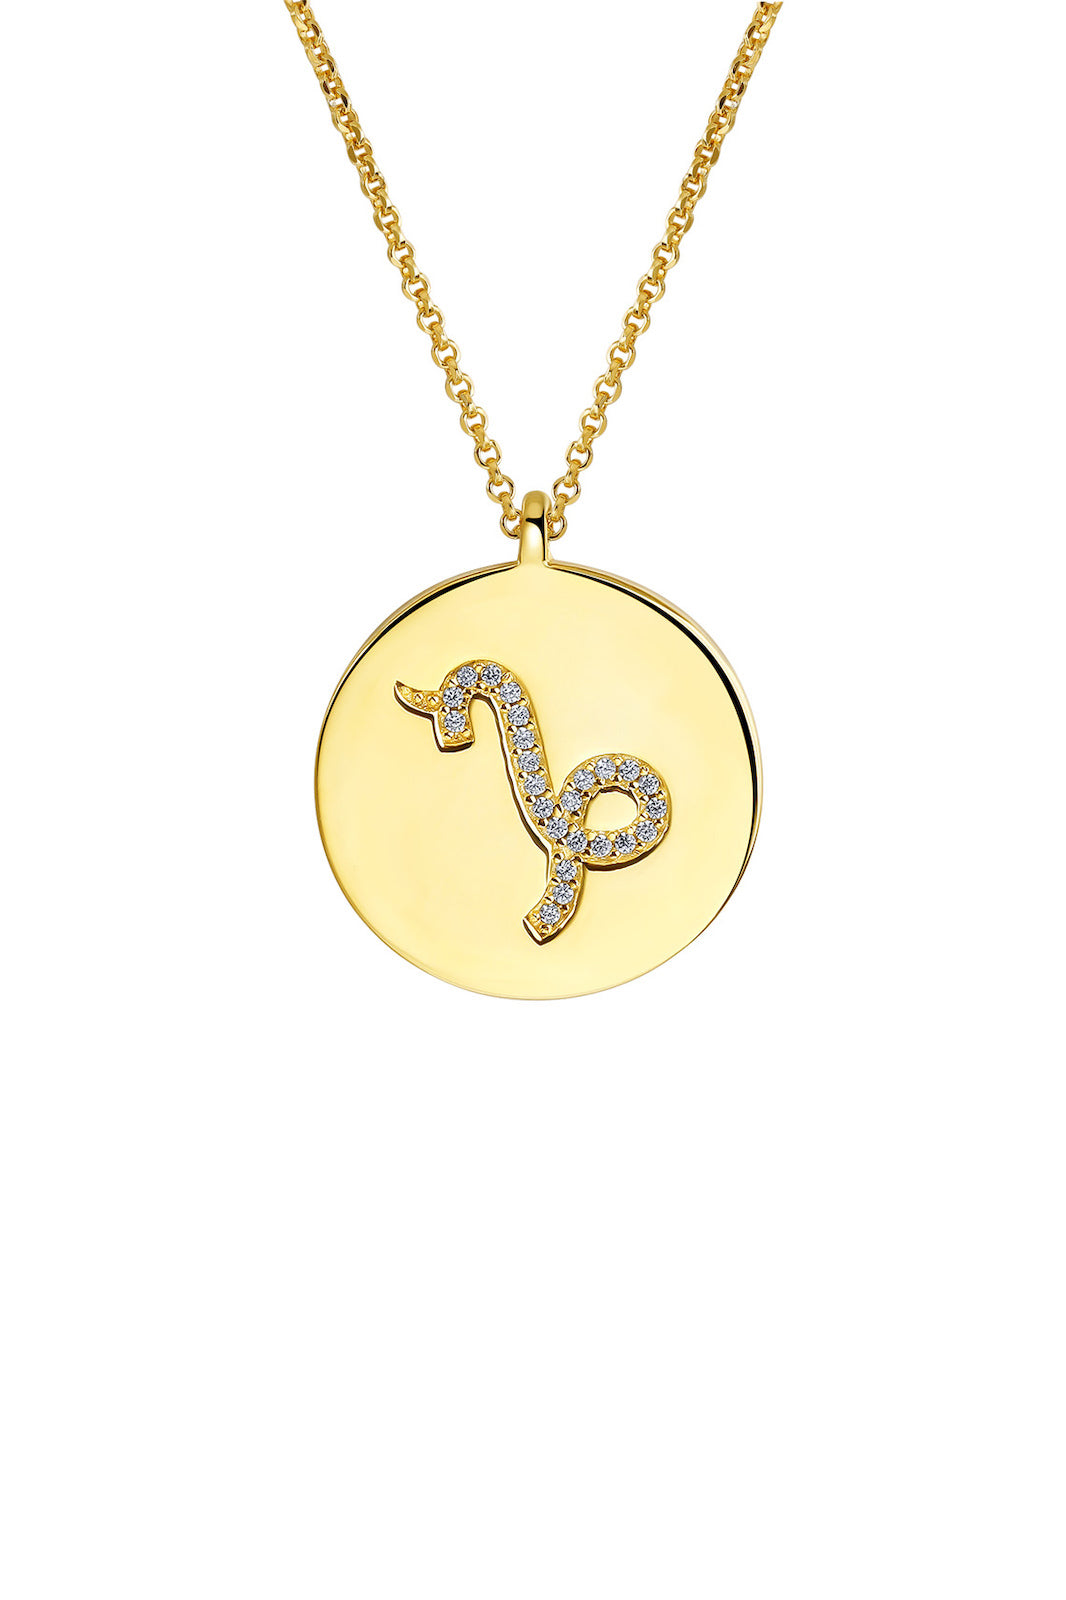 Gold Plated Silver Zodiac Necklace - Capricorn Side View